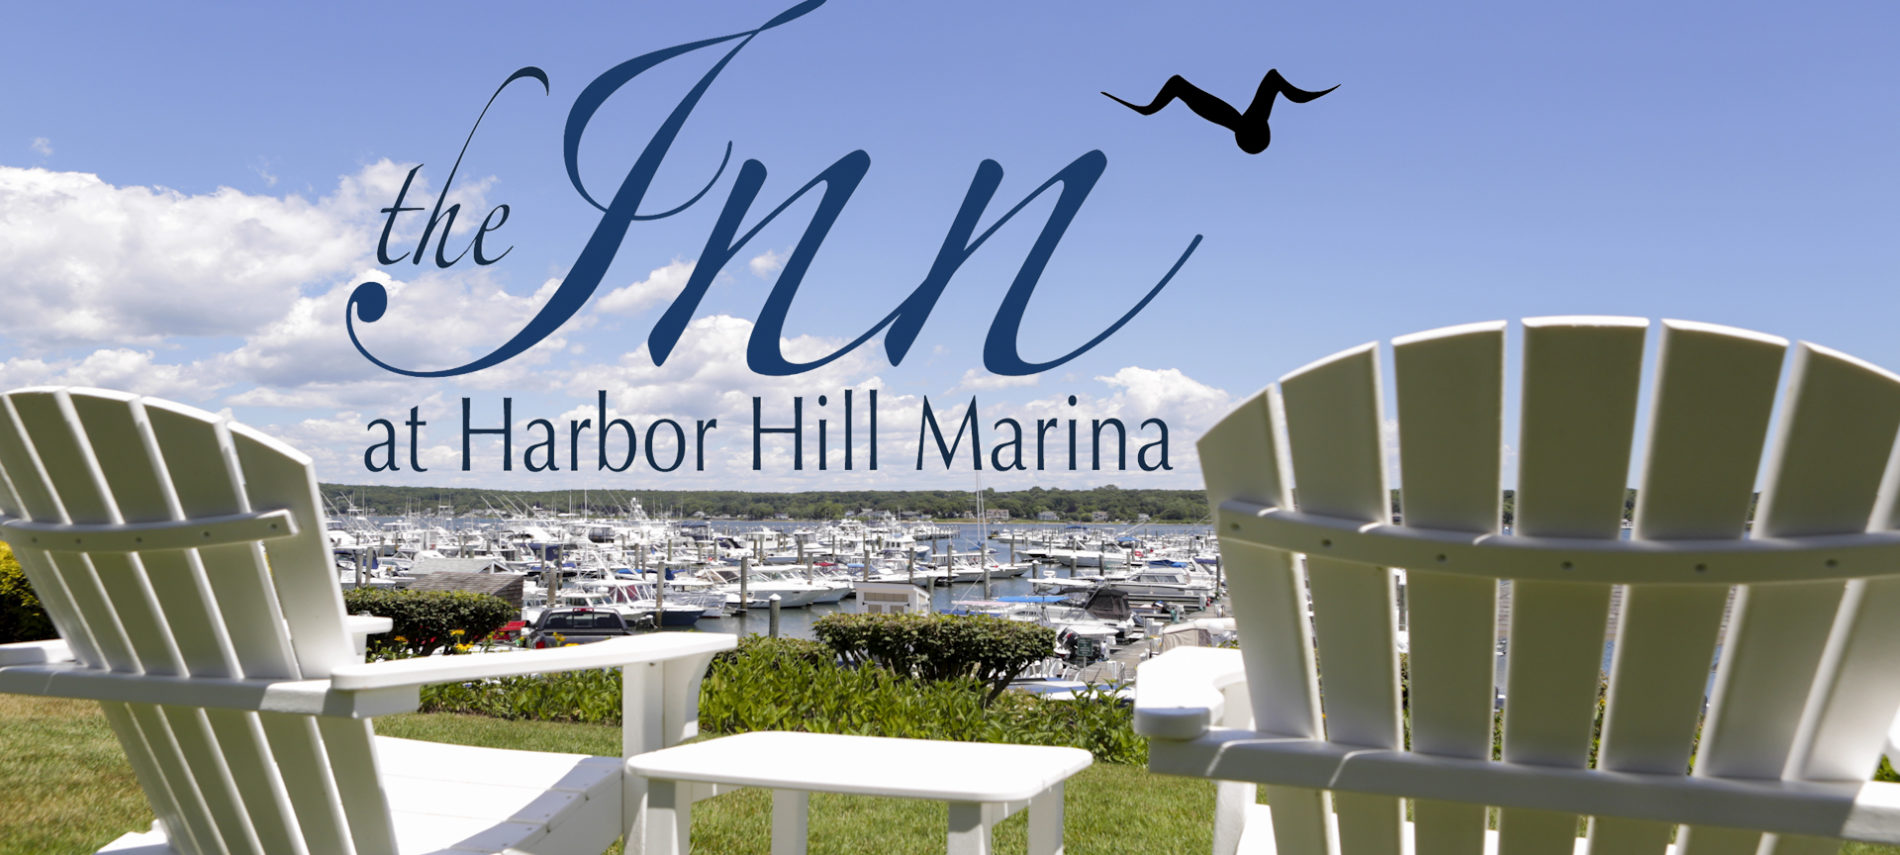 Overlooking Harbor Hill Marina on the Connectocut shoreline